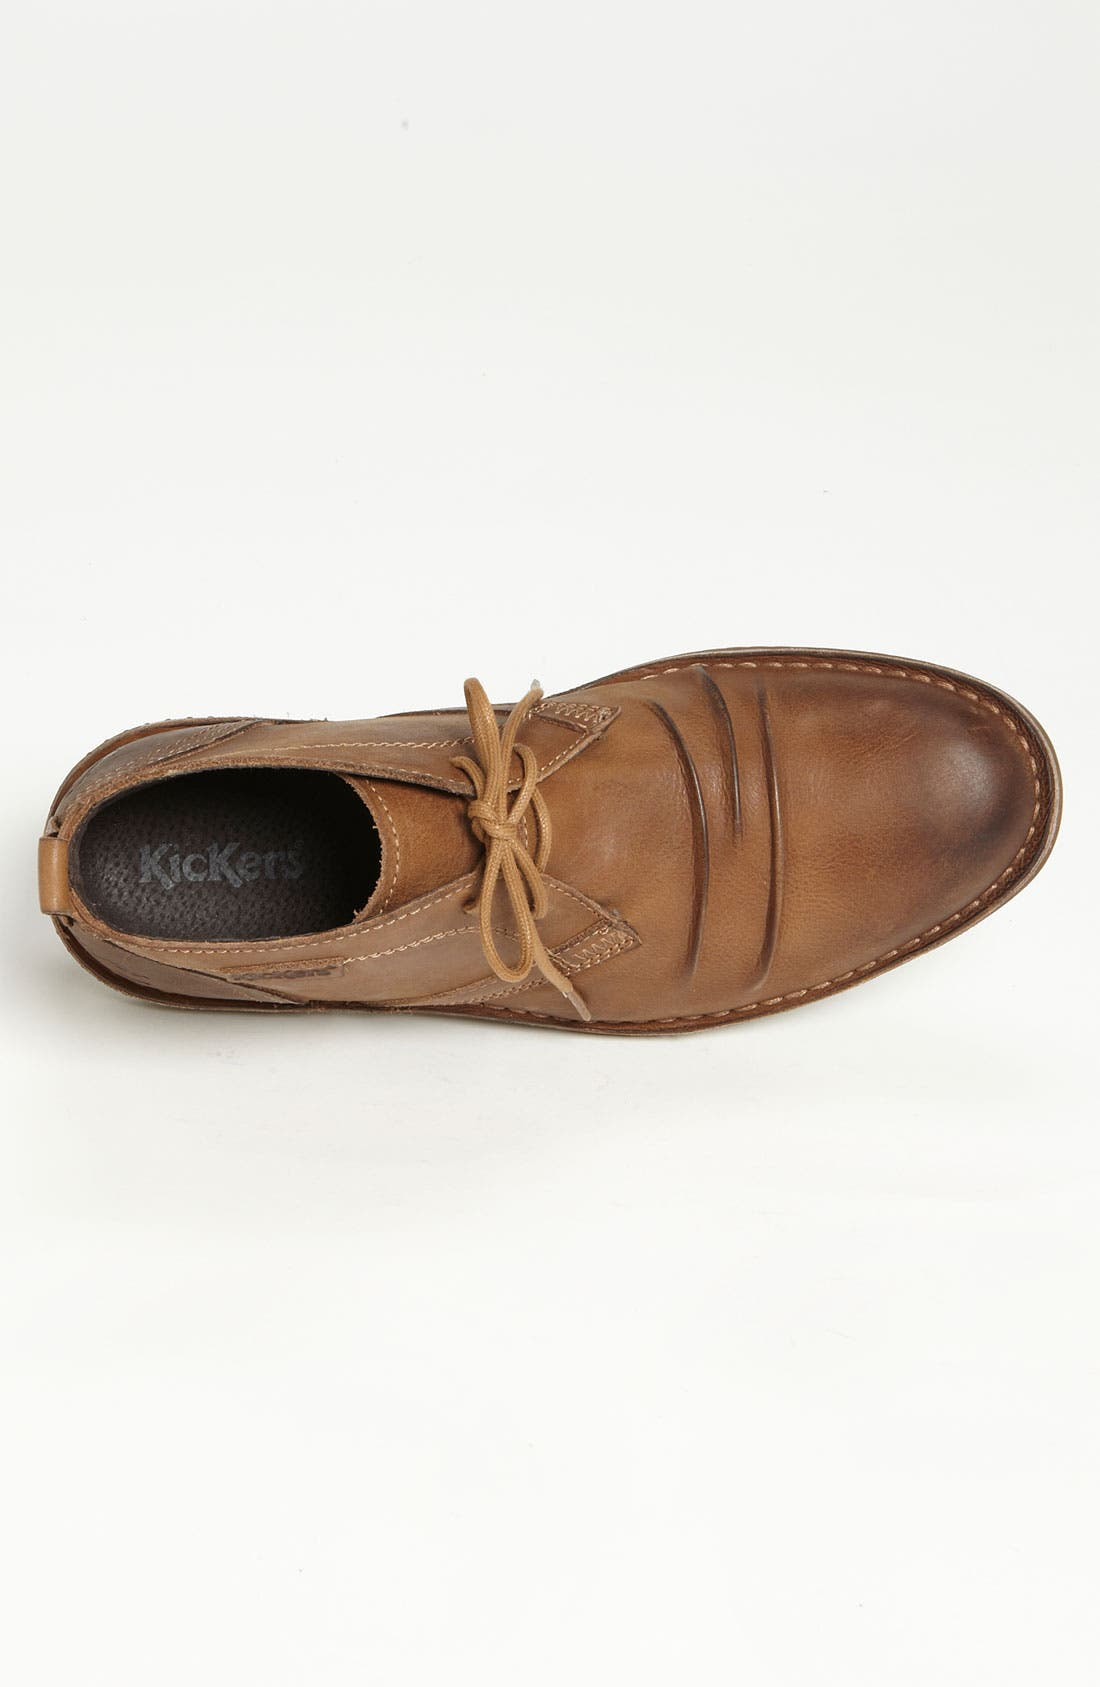 Alternate Image 3  - Kickers 'Jecho' Chukka Boot